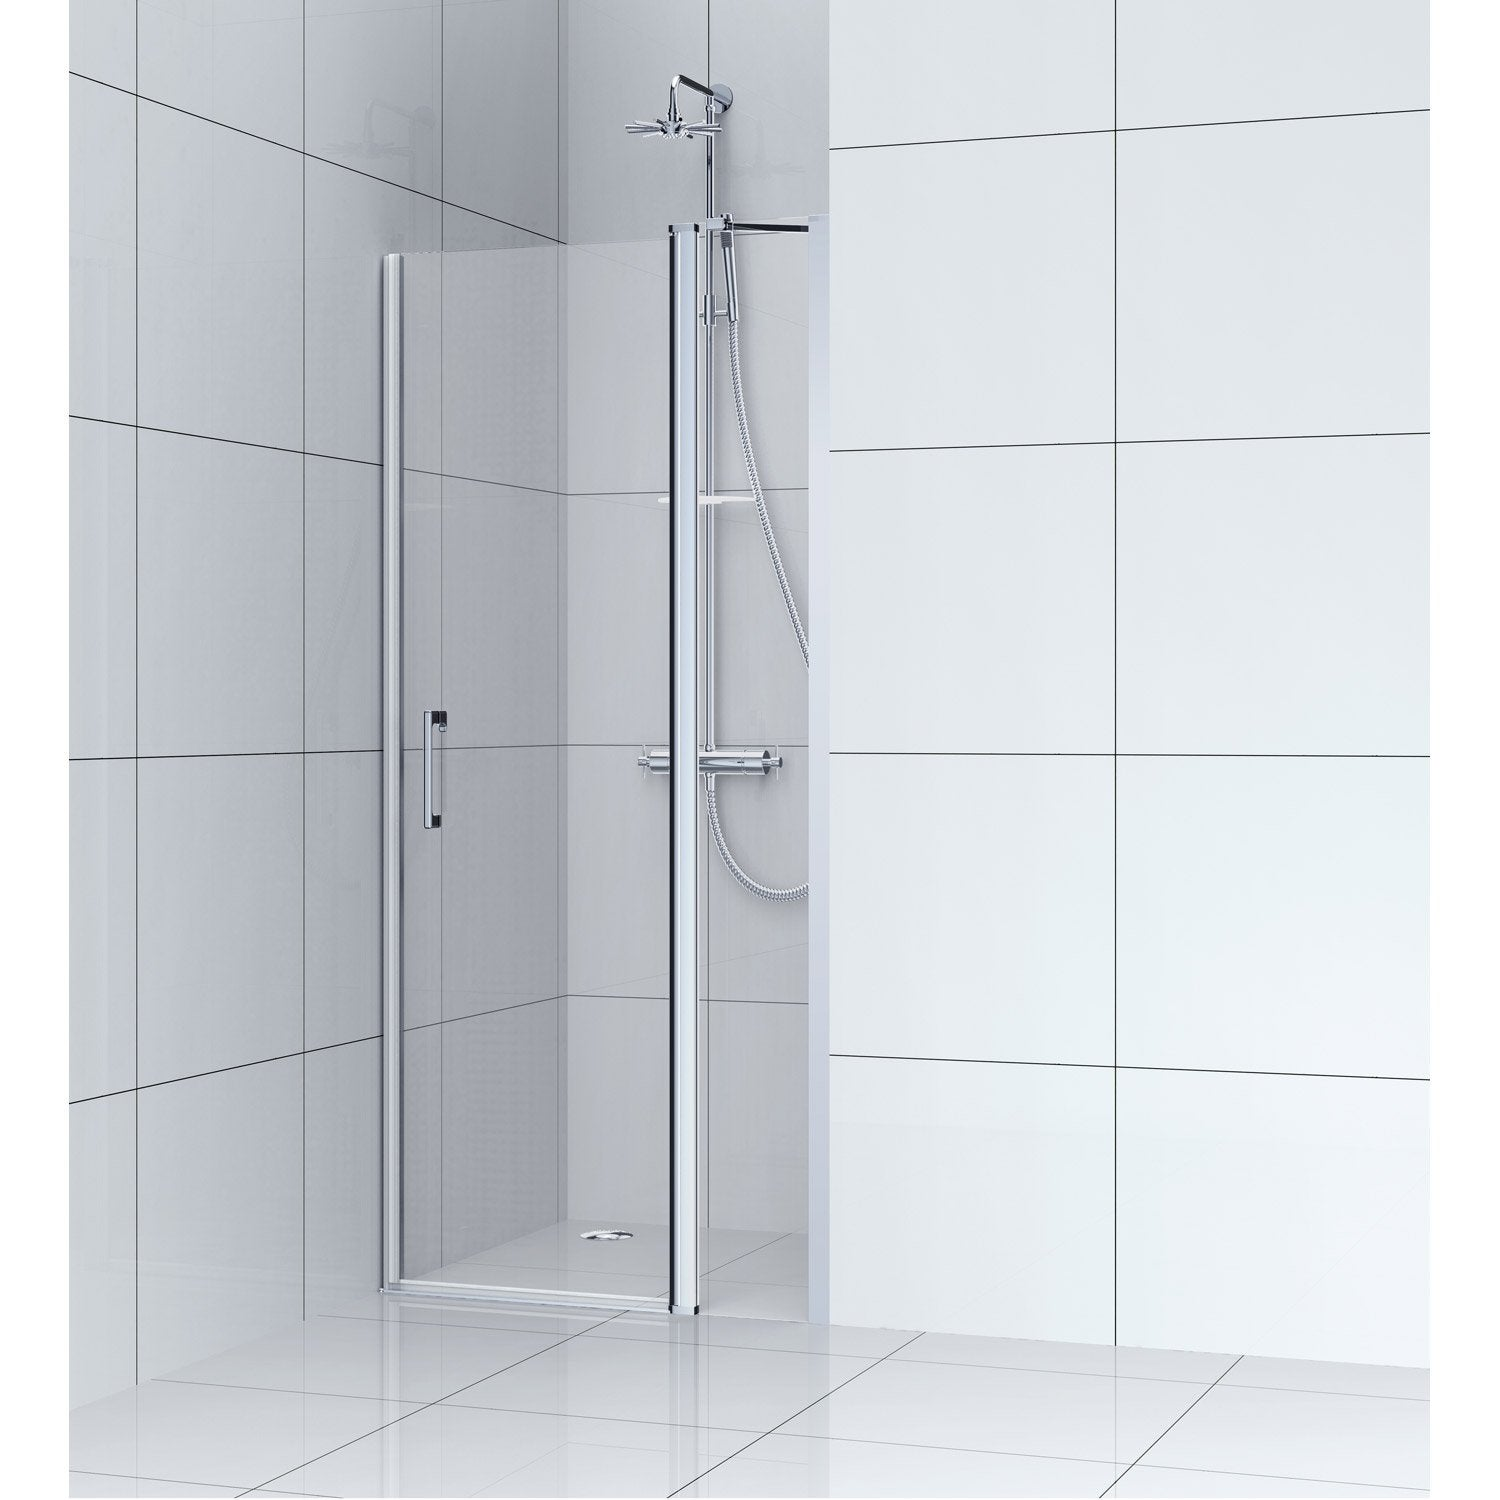 Porte de douche pivotante 90 cm transparent remix for Porte de douche pivotant 90